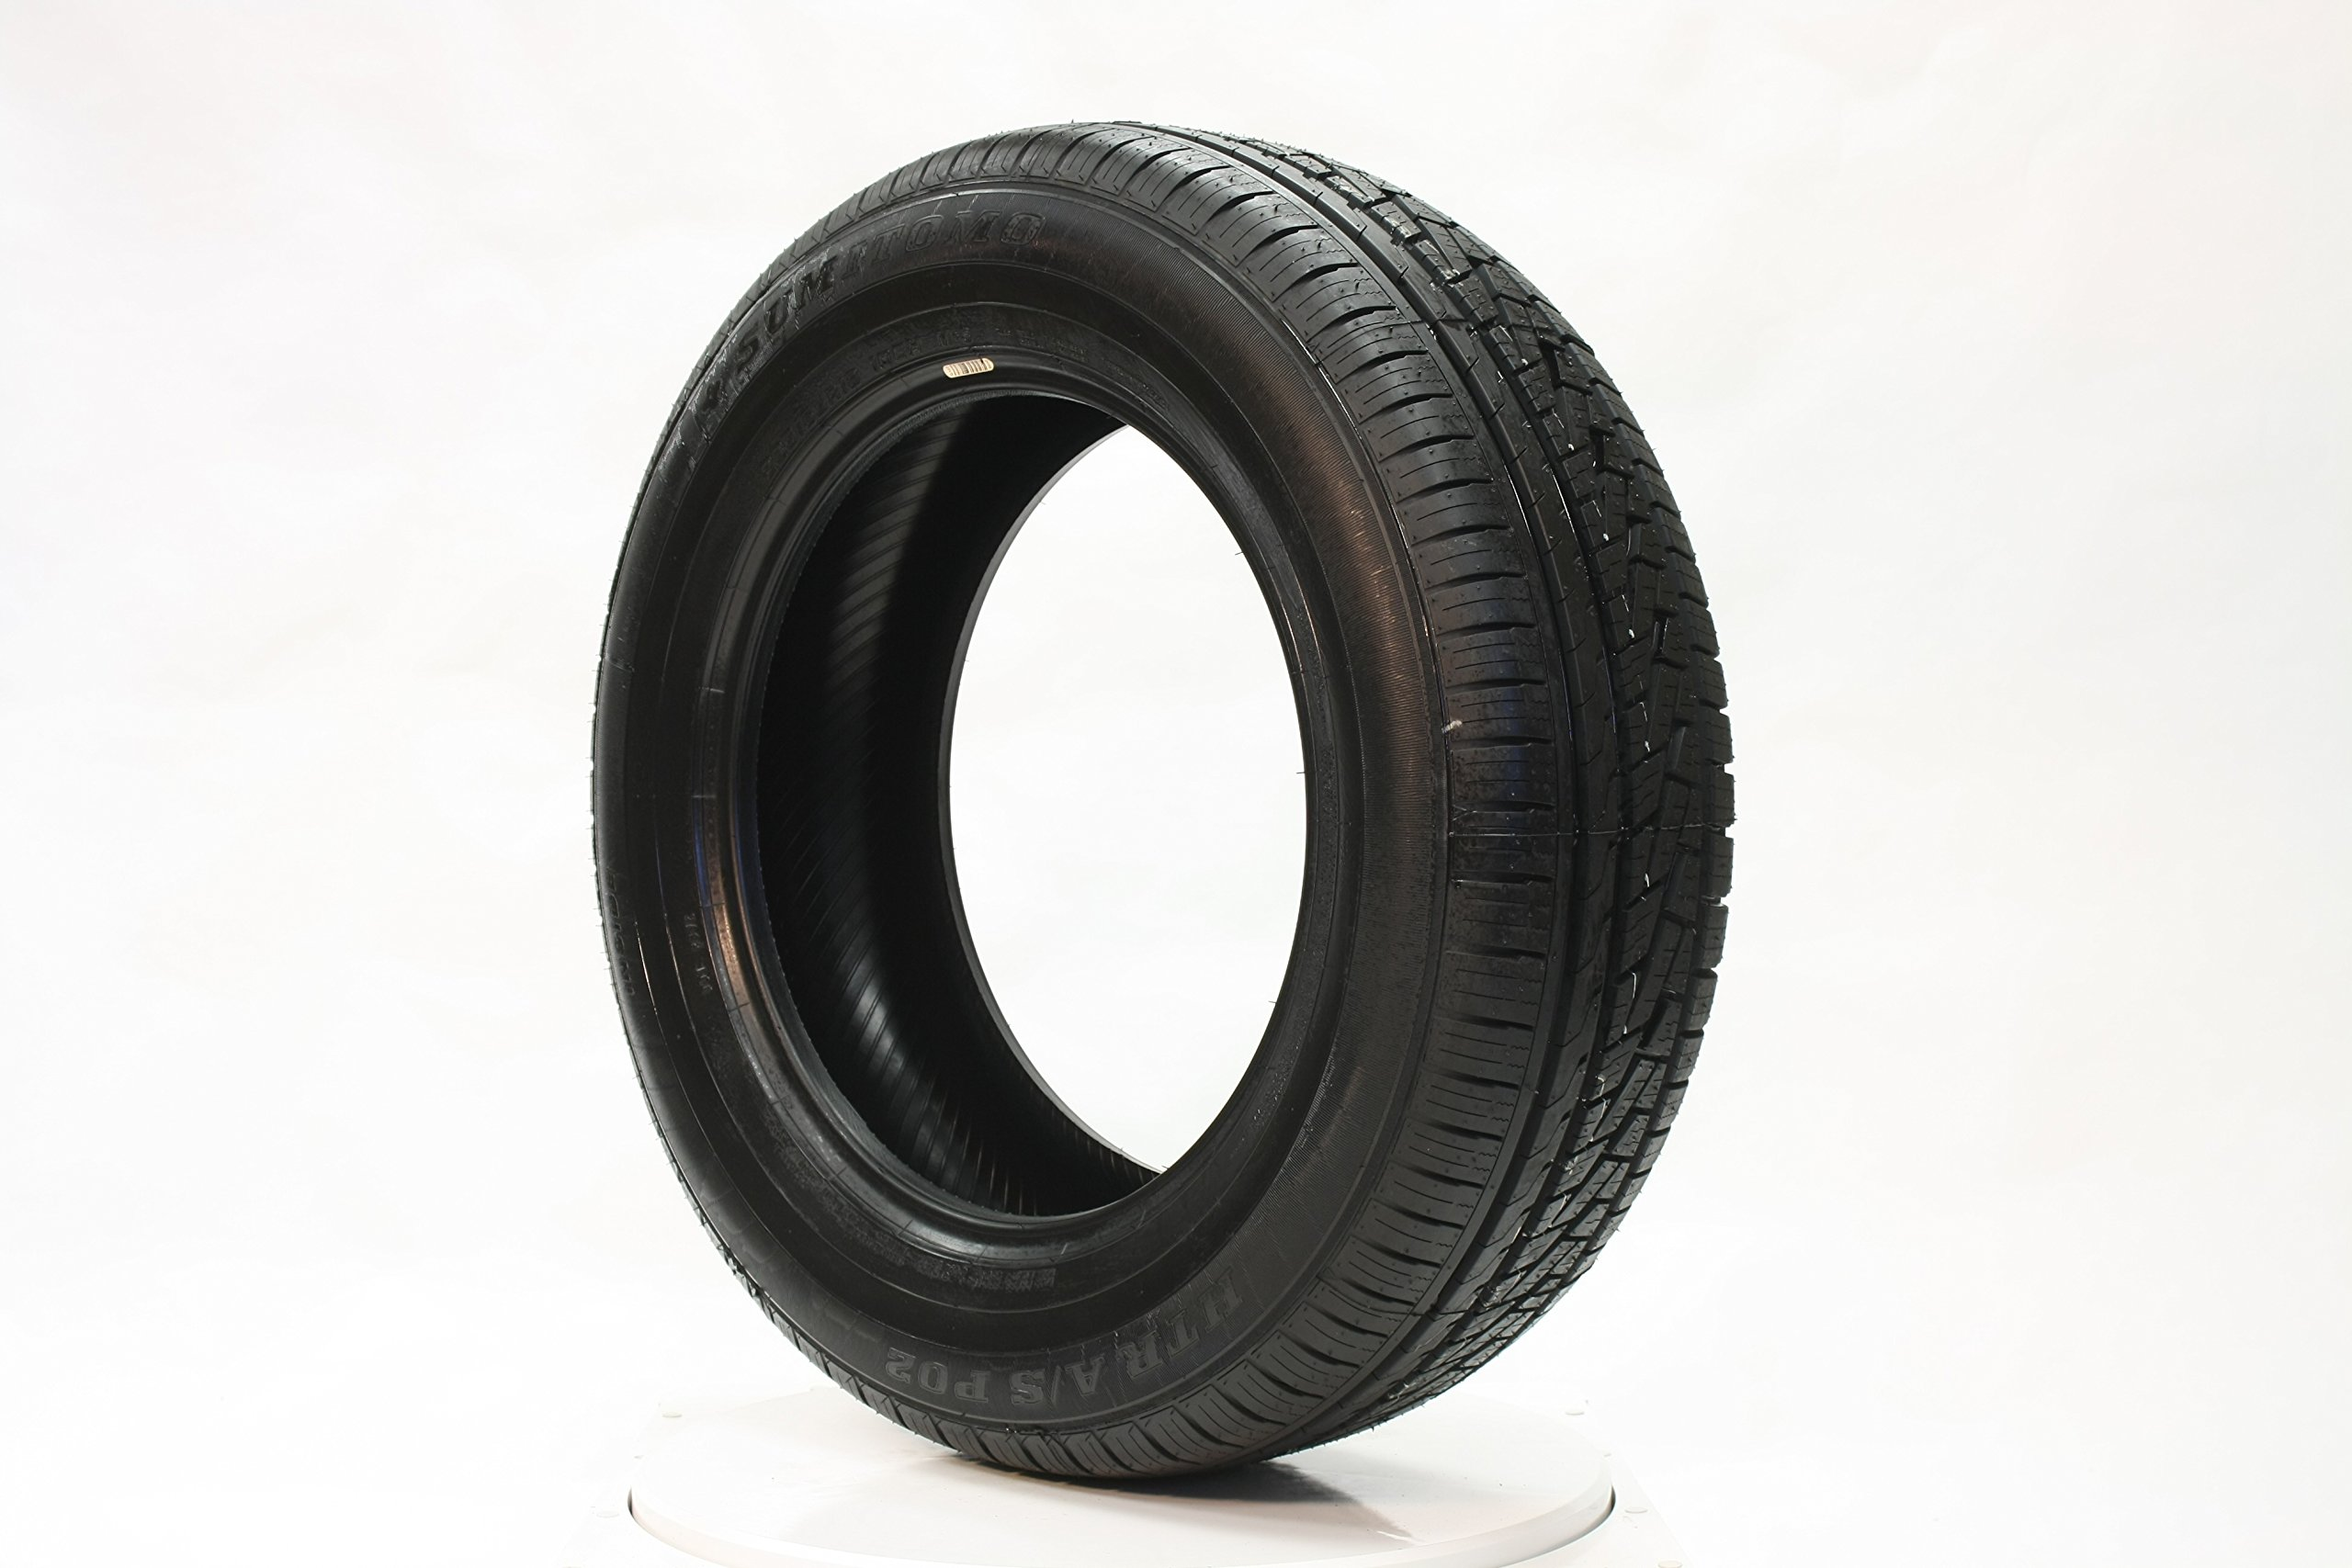 Sumitomo Tire HTR A/S P02 Performance Radial Tire - 245/45R17 99W